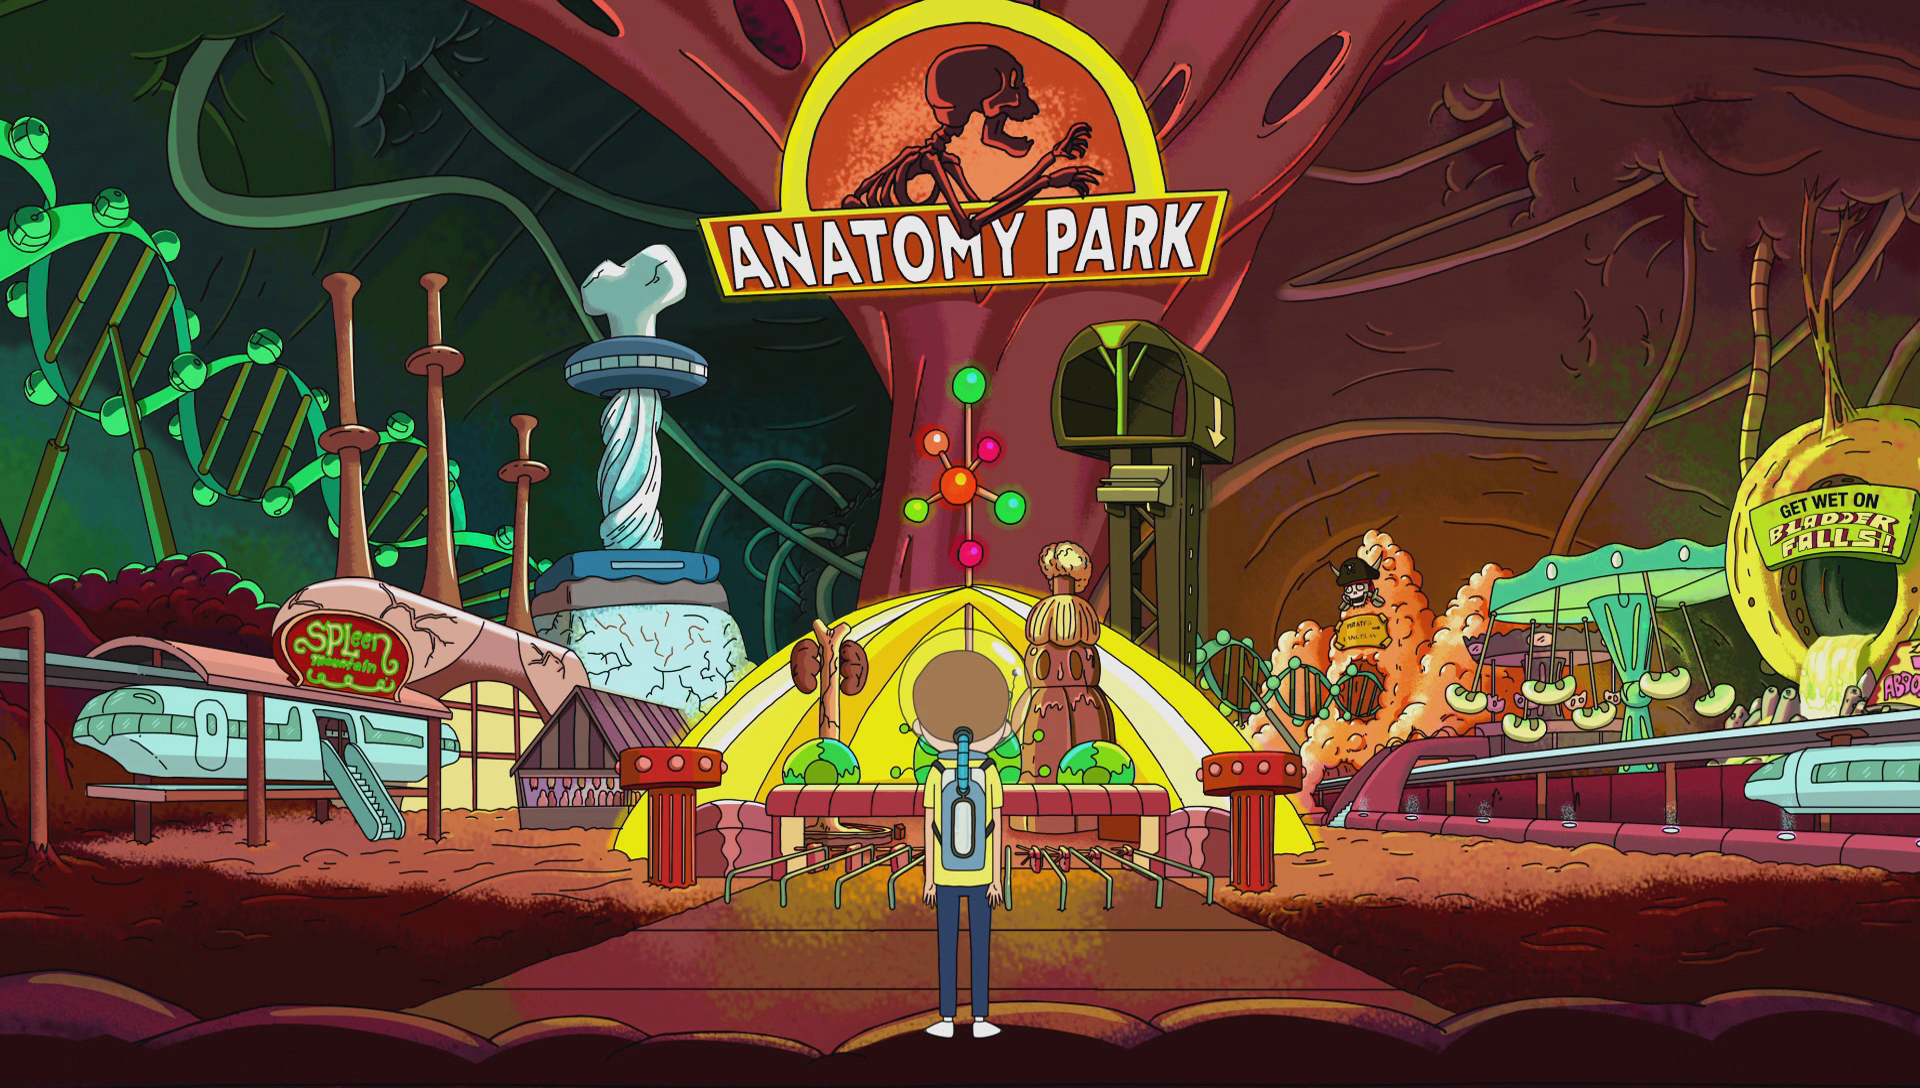 Anatomy Park (episode) | Rick and Morty Wiki | FANDOM powered by Wikia